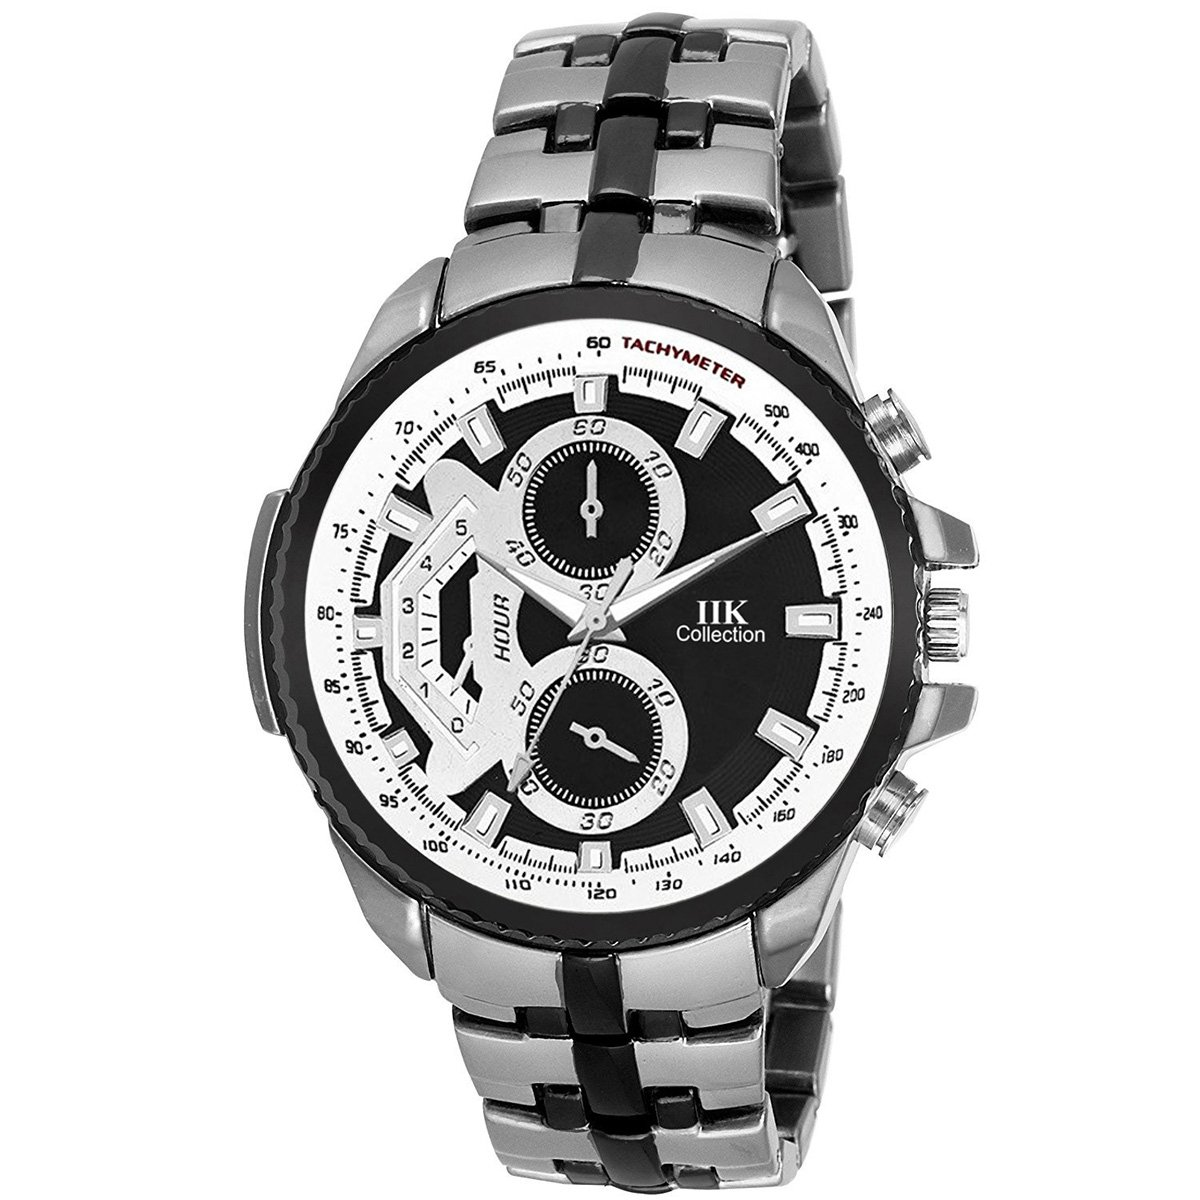 0c6cc4f0248 Buy Iik Collection Watches Analogue Black Dial Men s Watch - IIK-102M  Online at Low Prices in India - Amazon.in